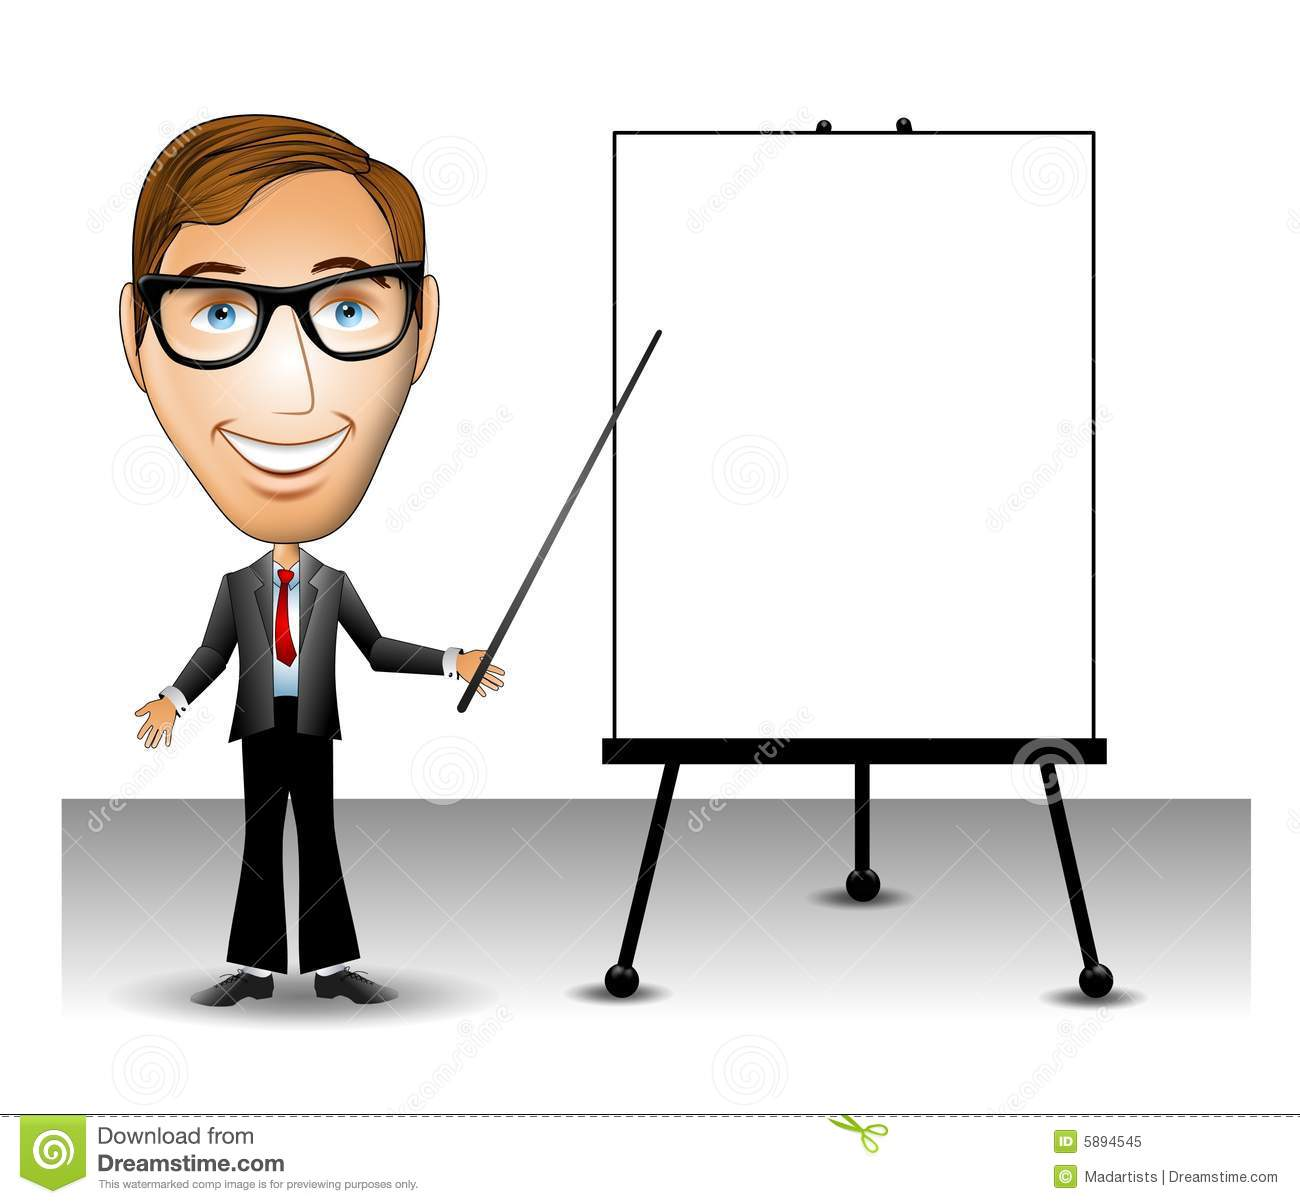 free business clipart for pre - Free Business Clipart For Presentations